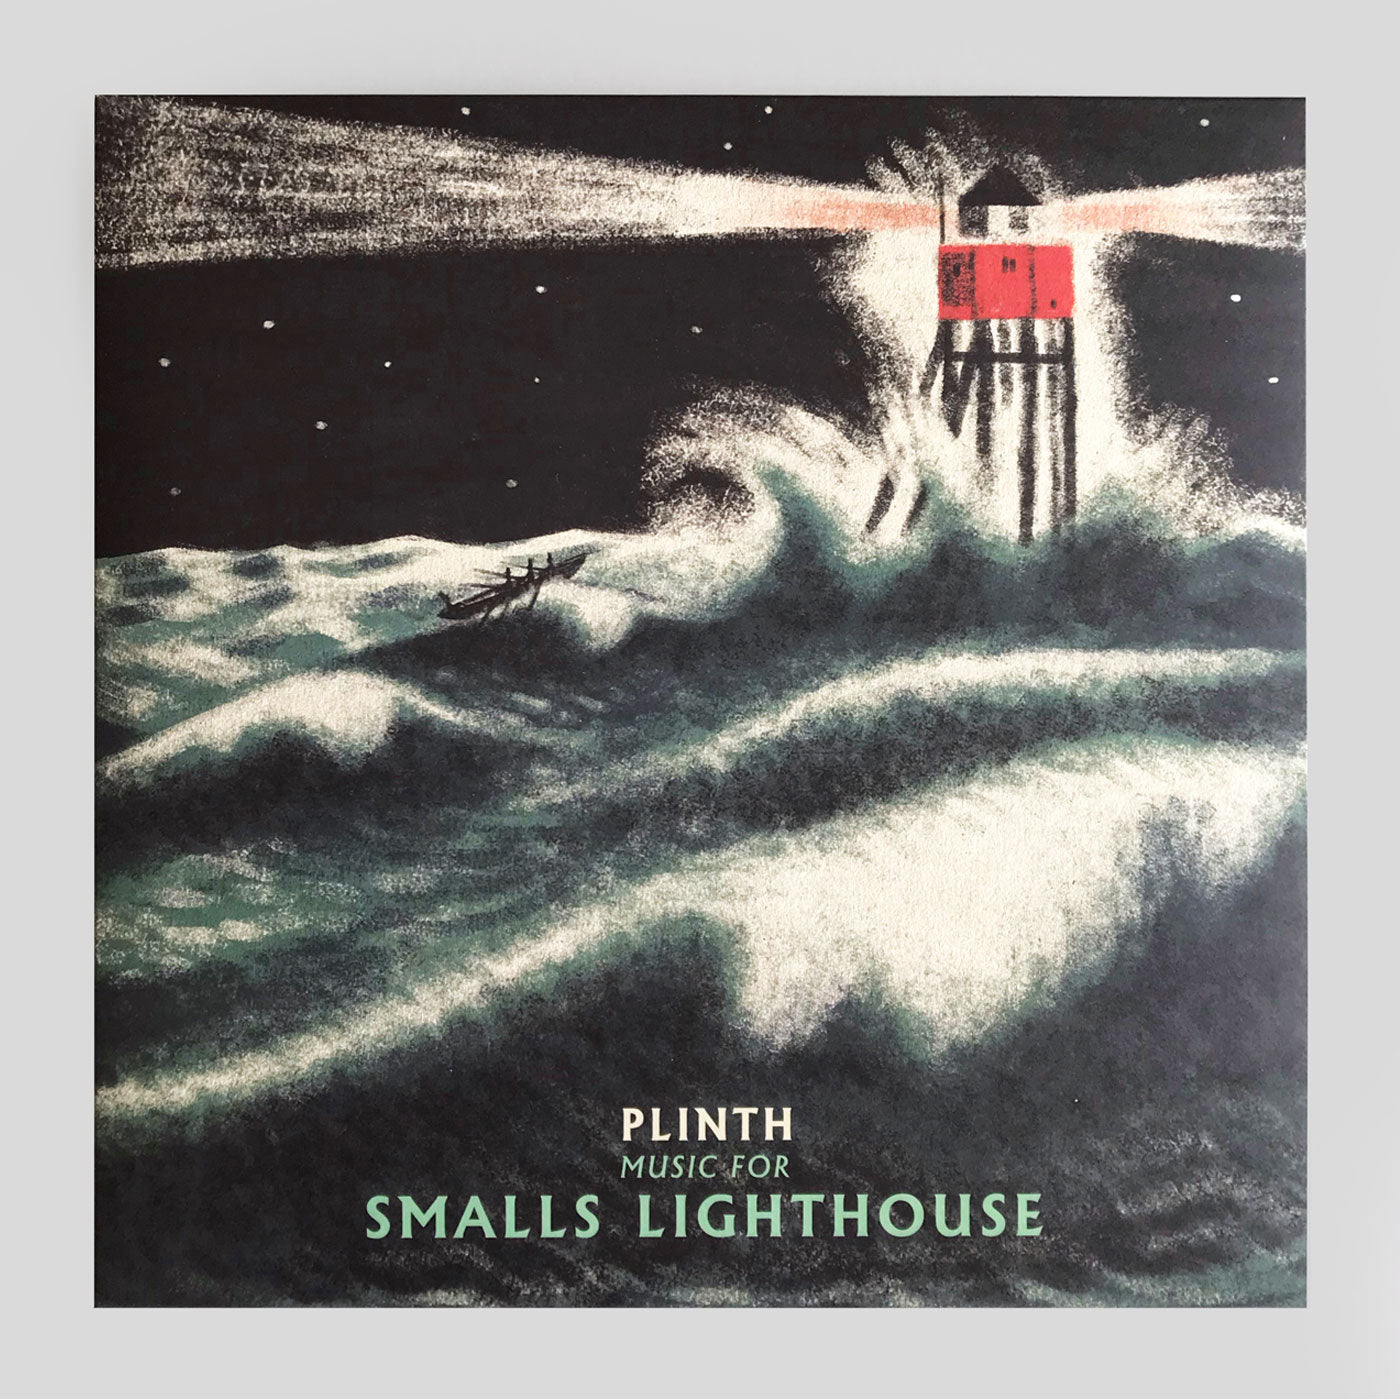 Plinth - Music for Smalls Lighthouse - Clay Pipe Music - Frances Castle - Colours May Vary